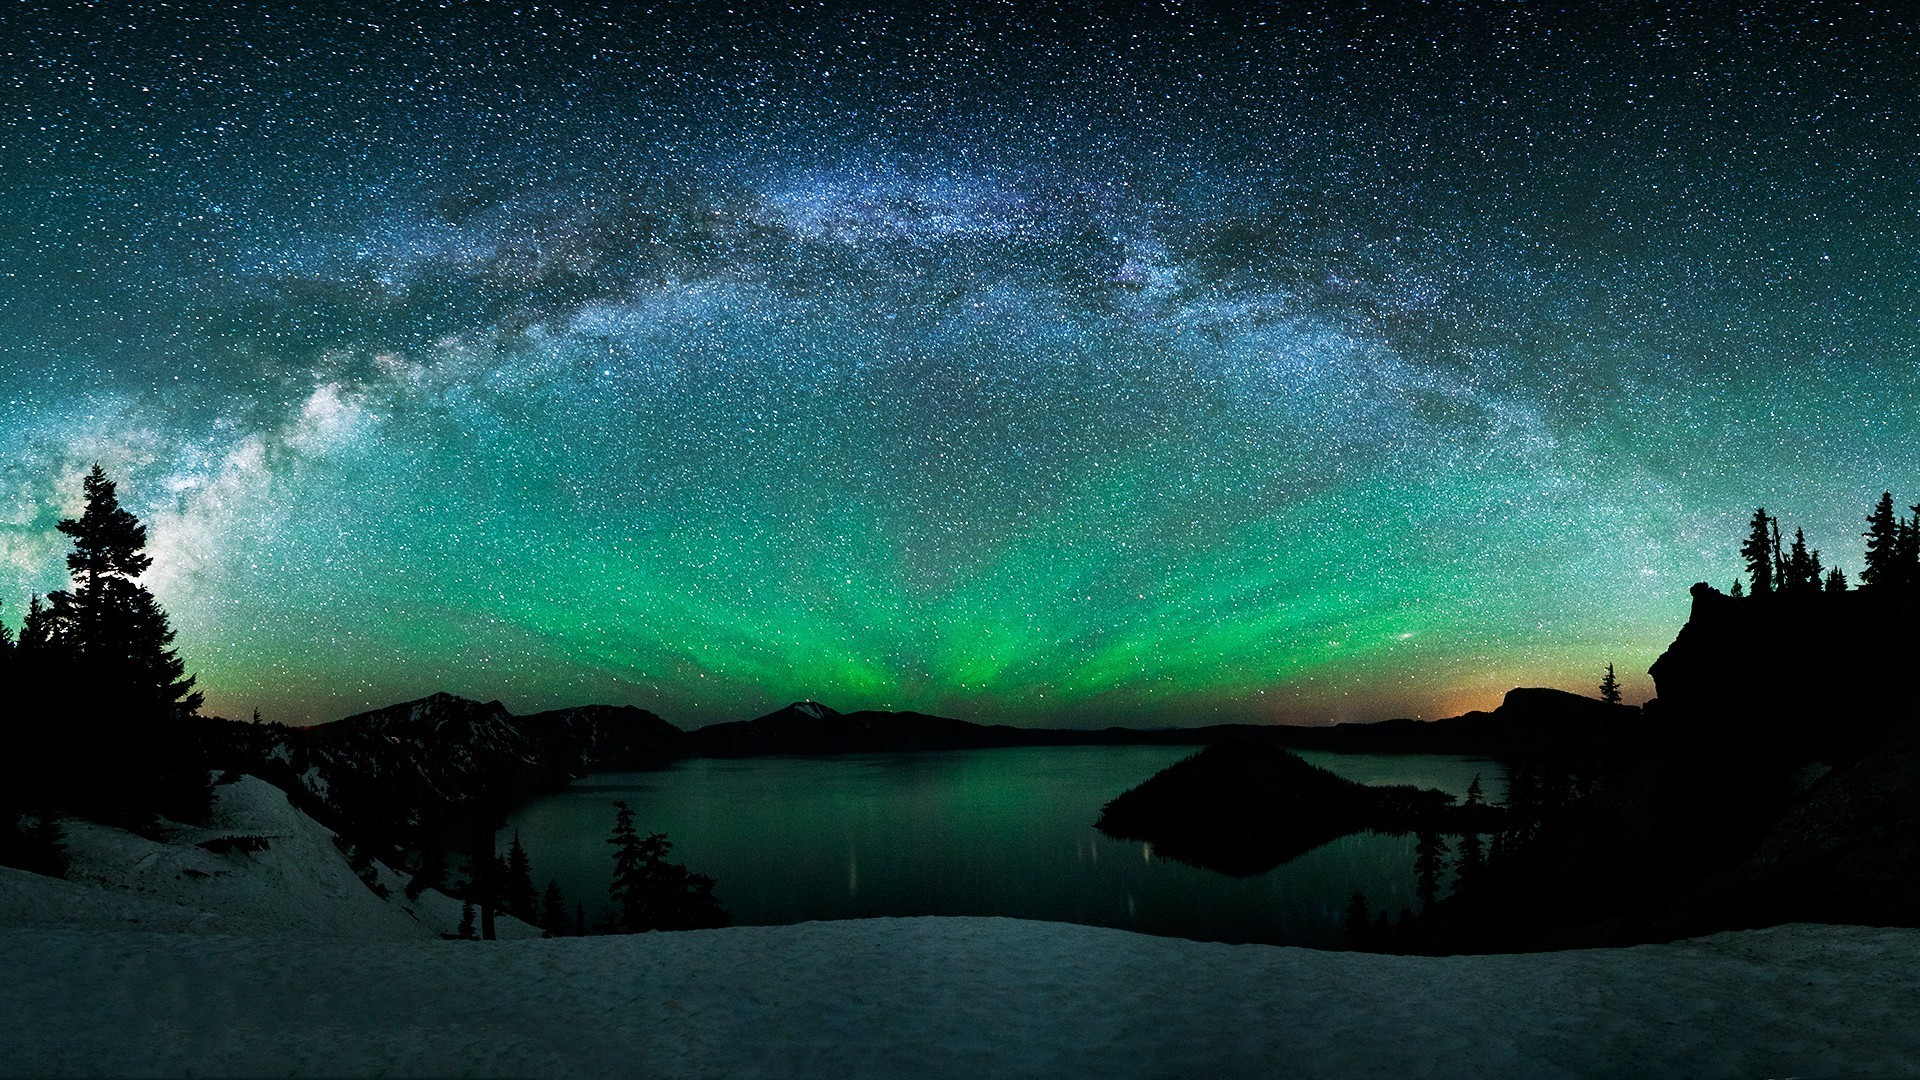 The Milky Way Above Mountain Lake Wallpaper and Aurora Borealis